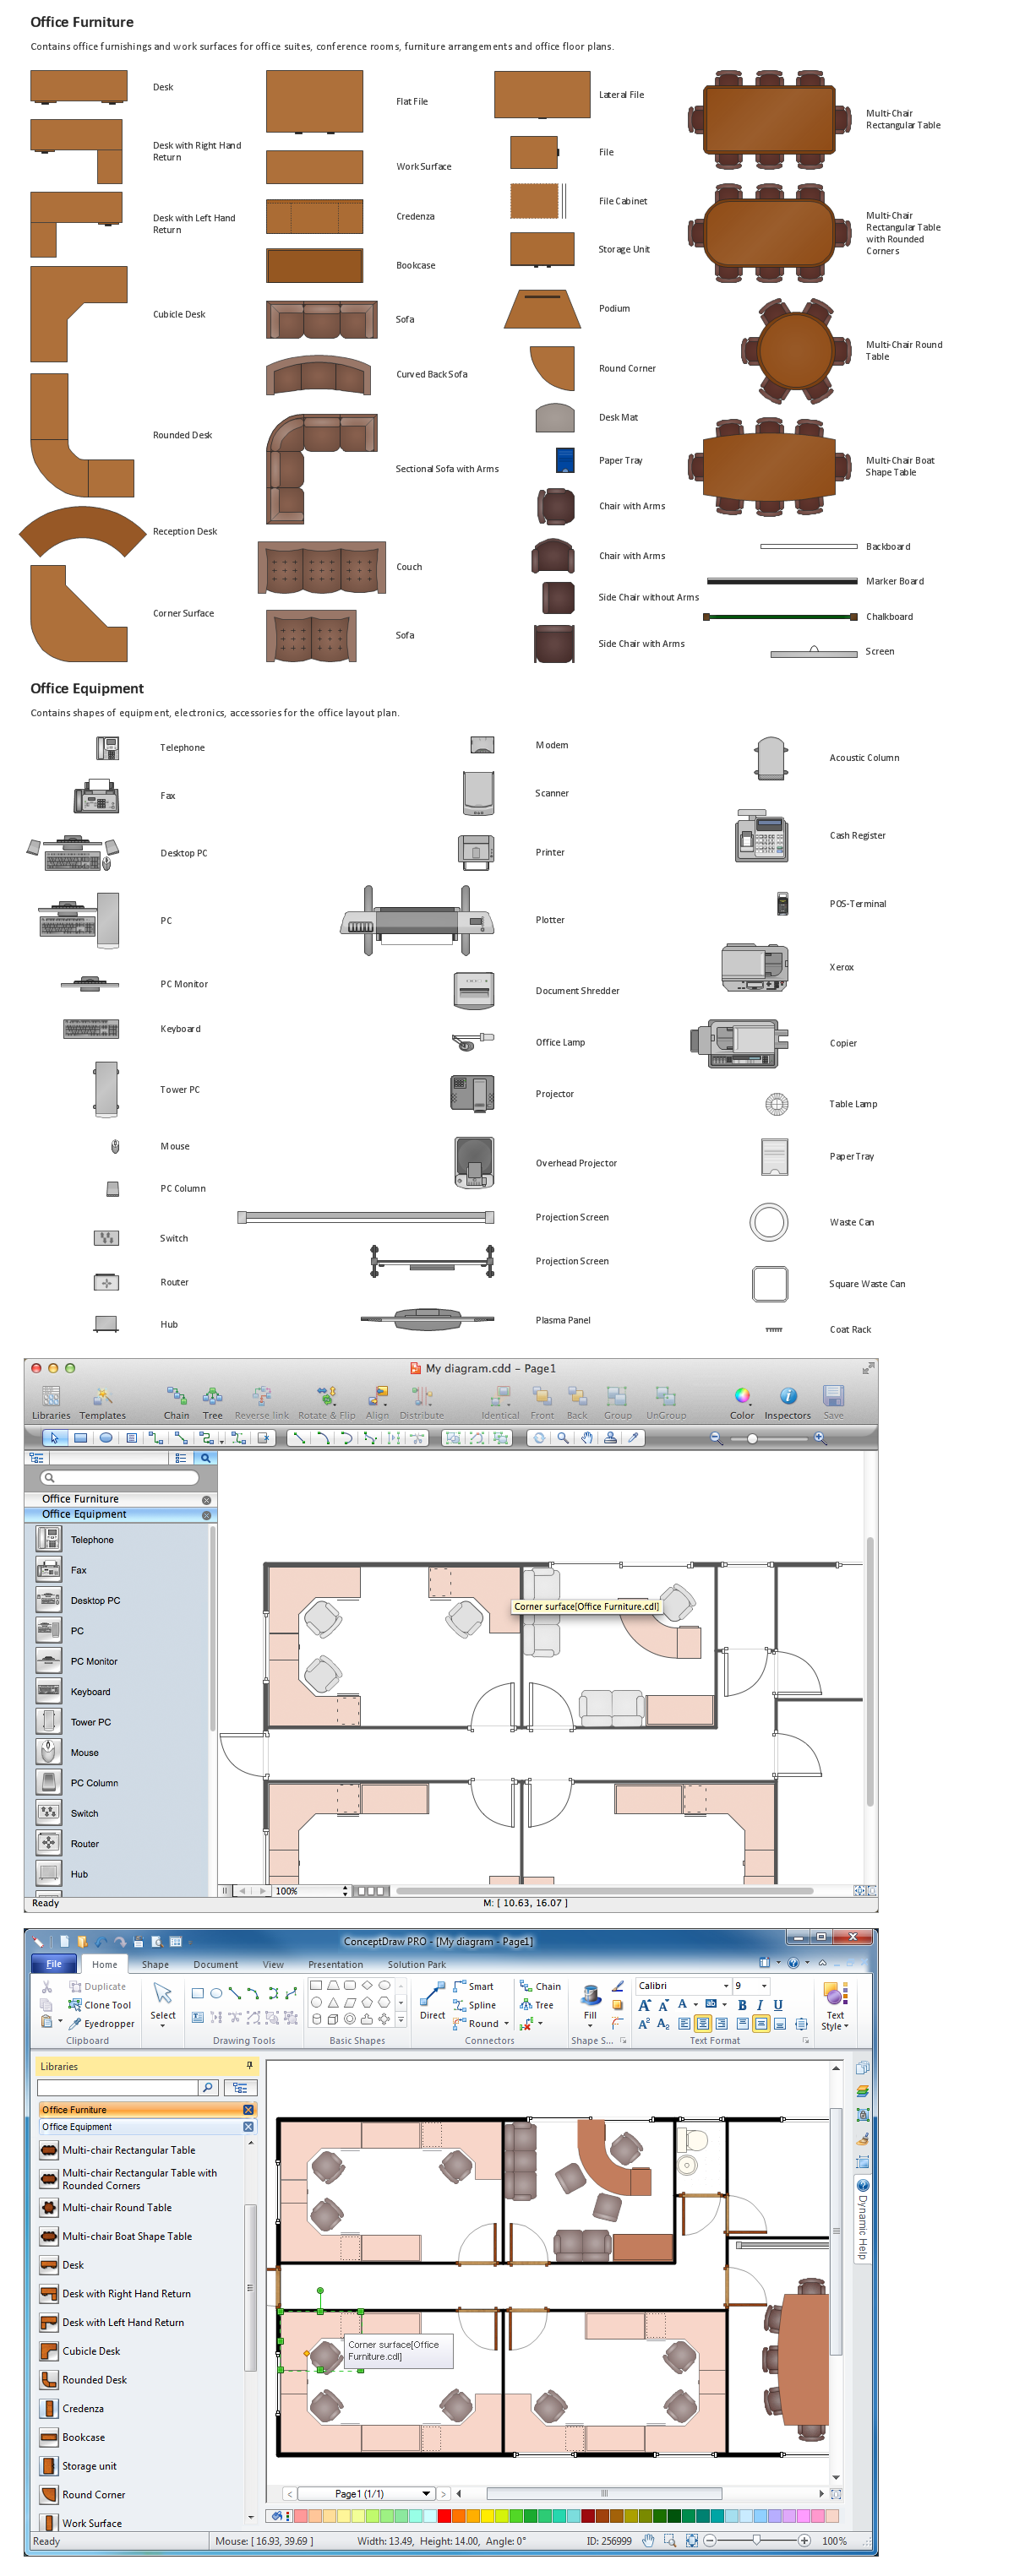 Design Elements Office Layout Plan